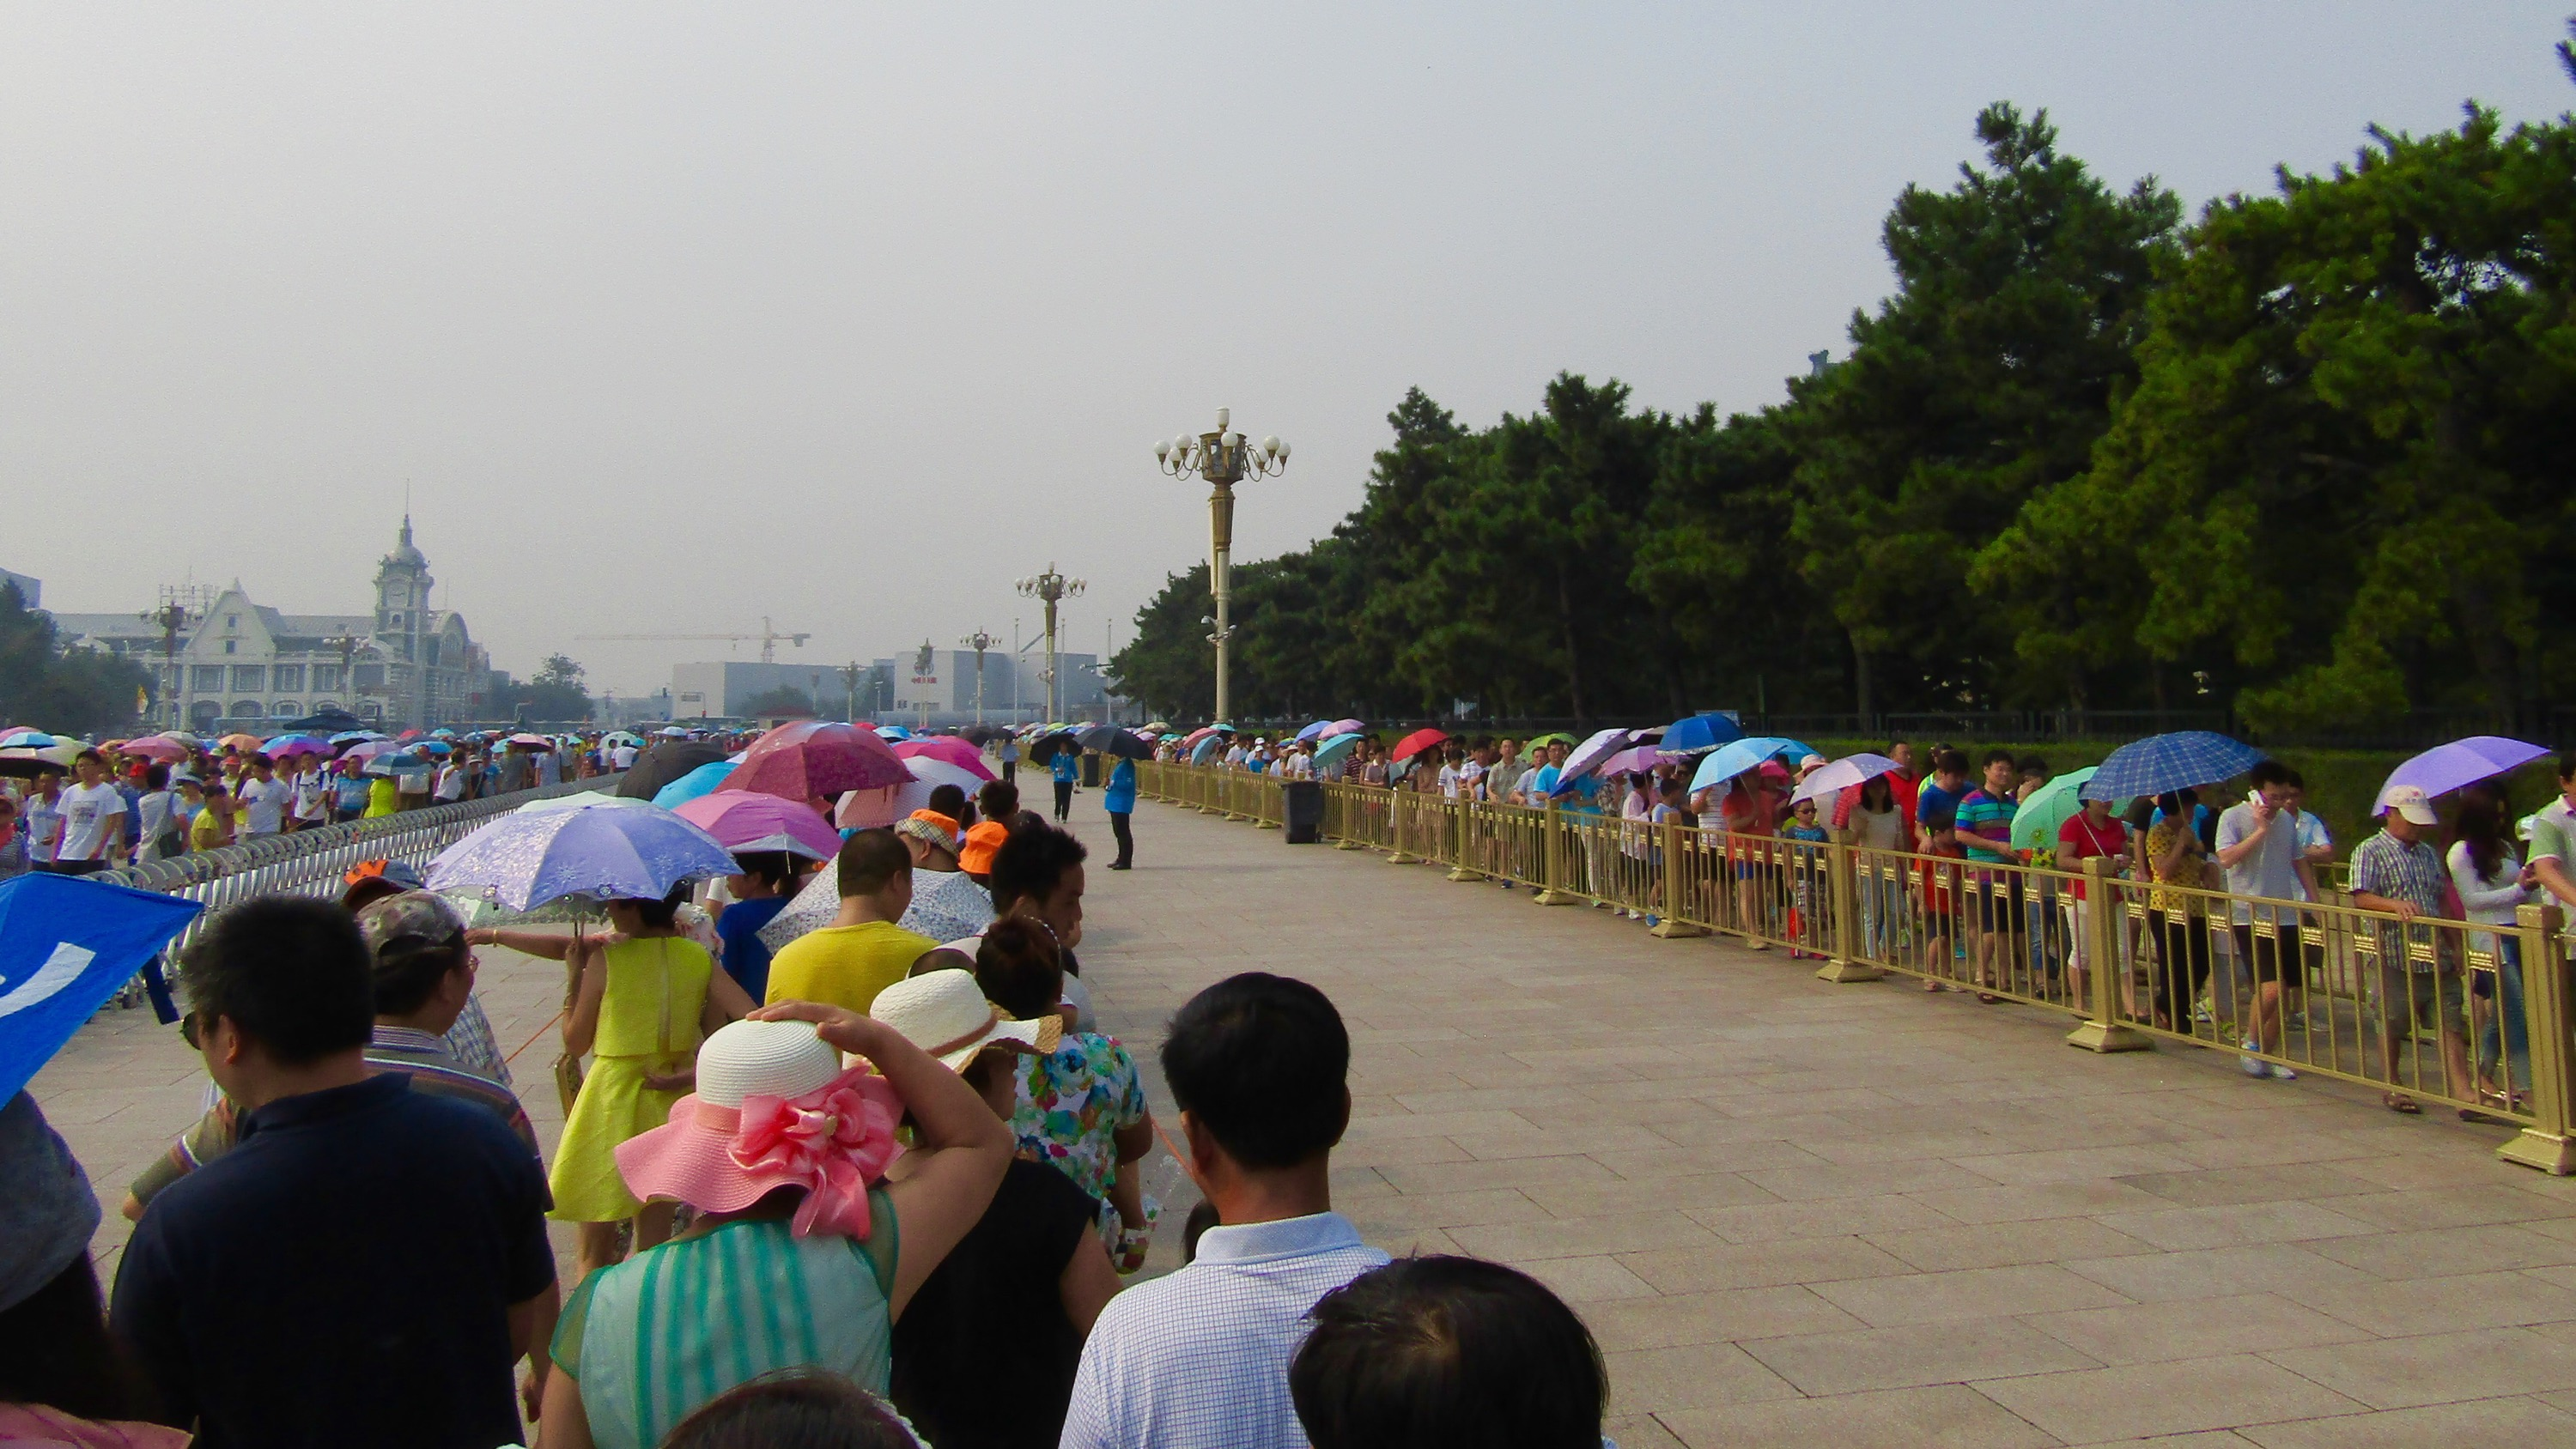 Another view of the line at Mao's mausoleum. Shortly after this picture was taken--and after 30 minutes in line--I was informed I couldn't bring my backpack or camera inside. Fortunately they let me check my bag at a nearby luggage check and re-enter the line.